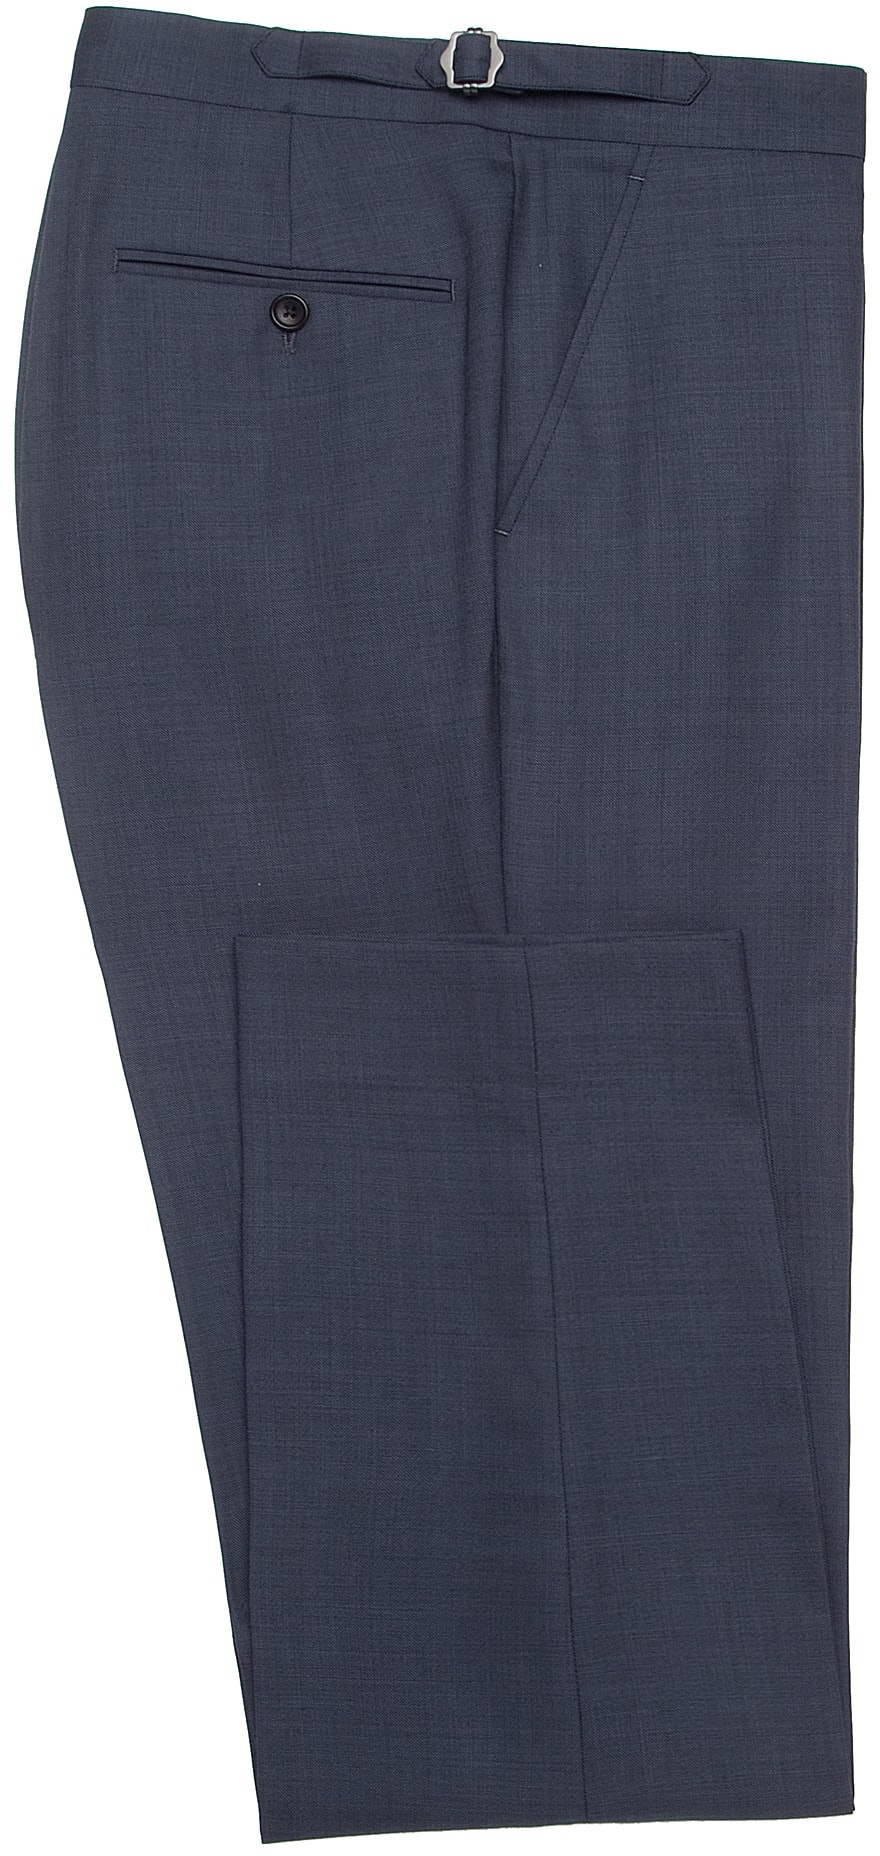 InStitchu Collection The Gainsborough Pants